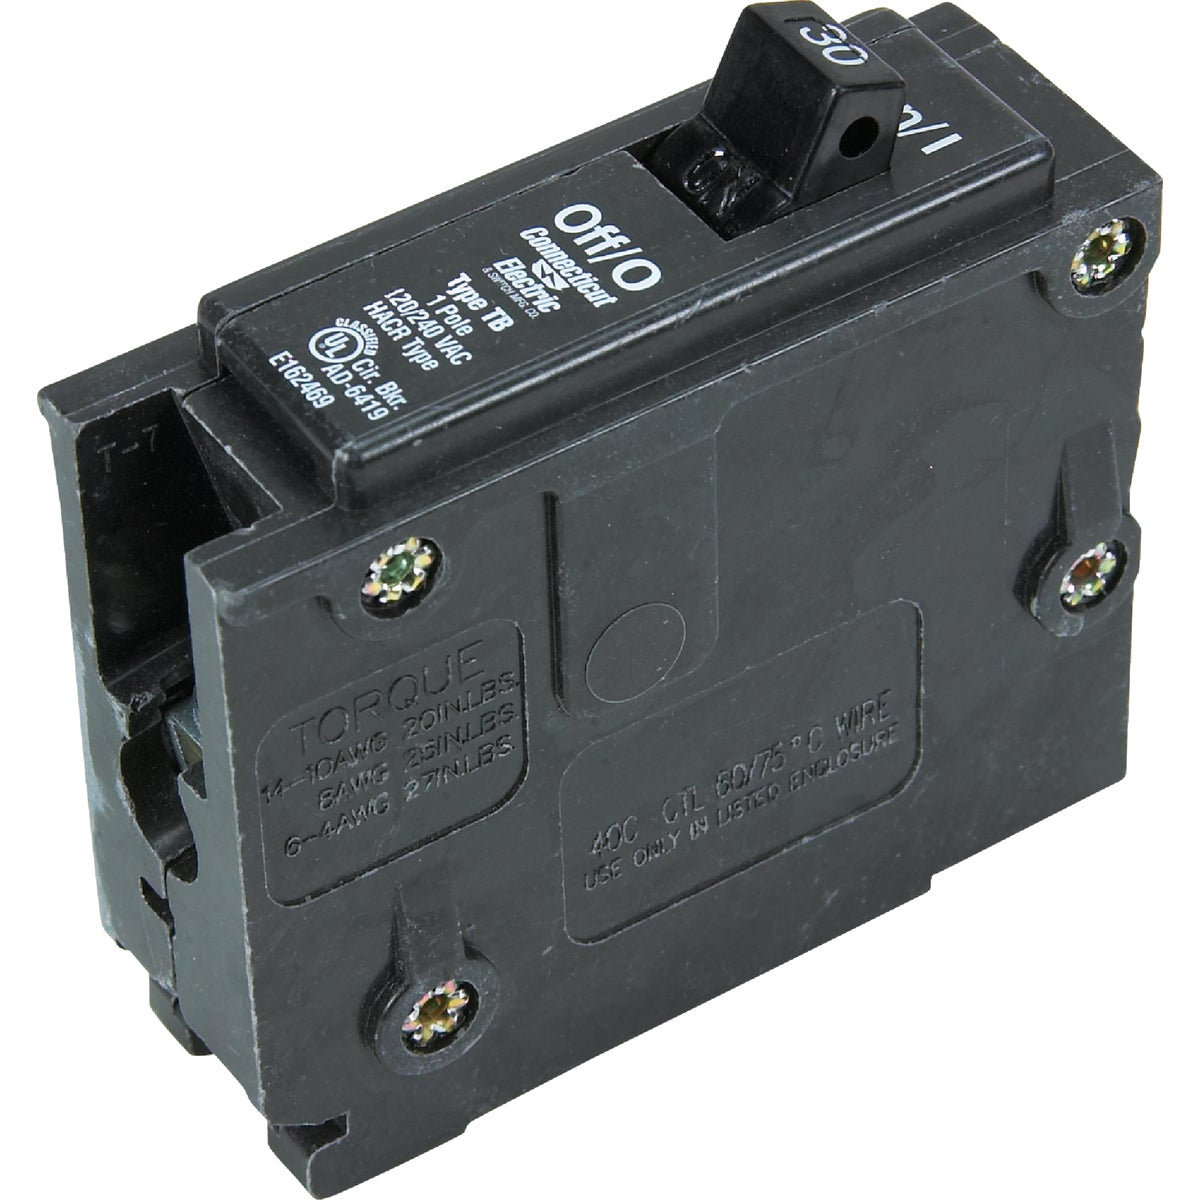 30A SP CIRCUIT BREAKER - ICBQ130 by Connecticut Electric